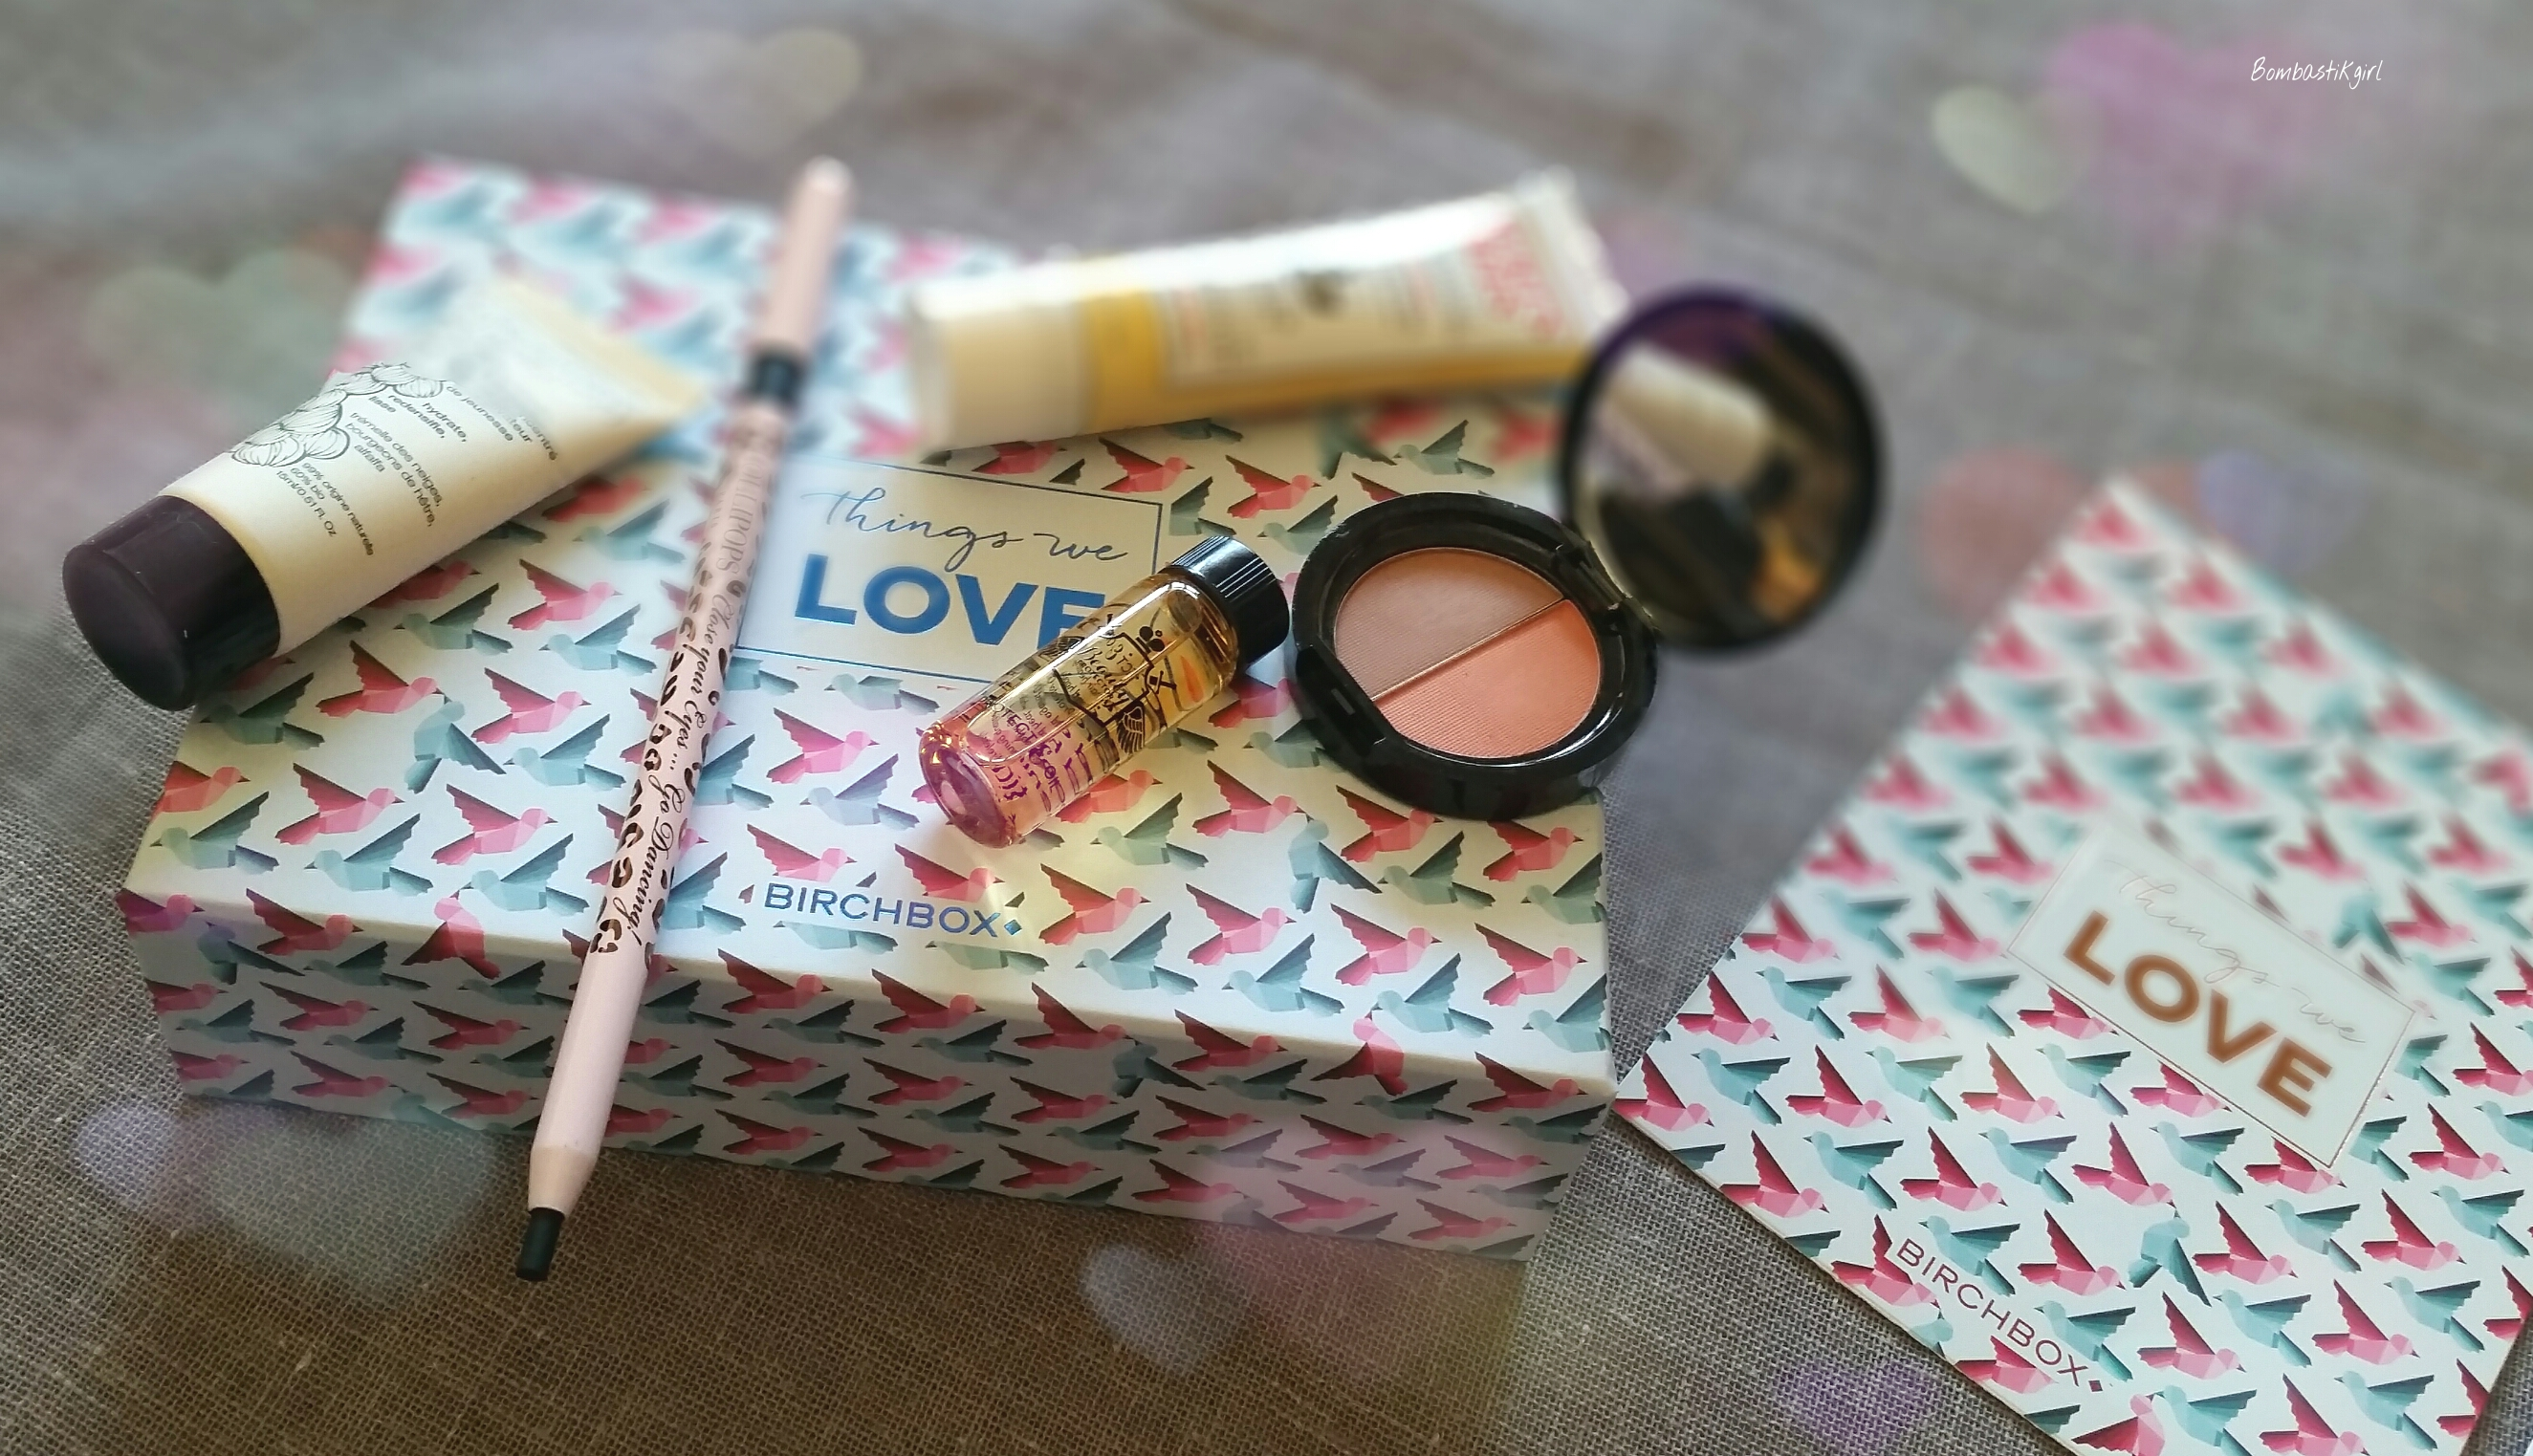 Things We Love, Birchbox